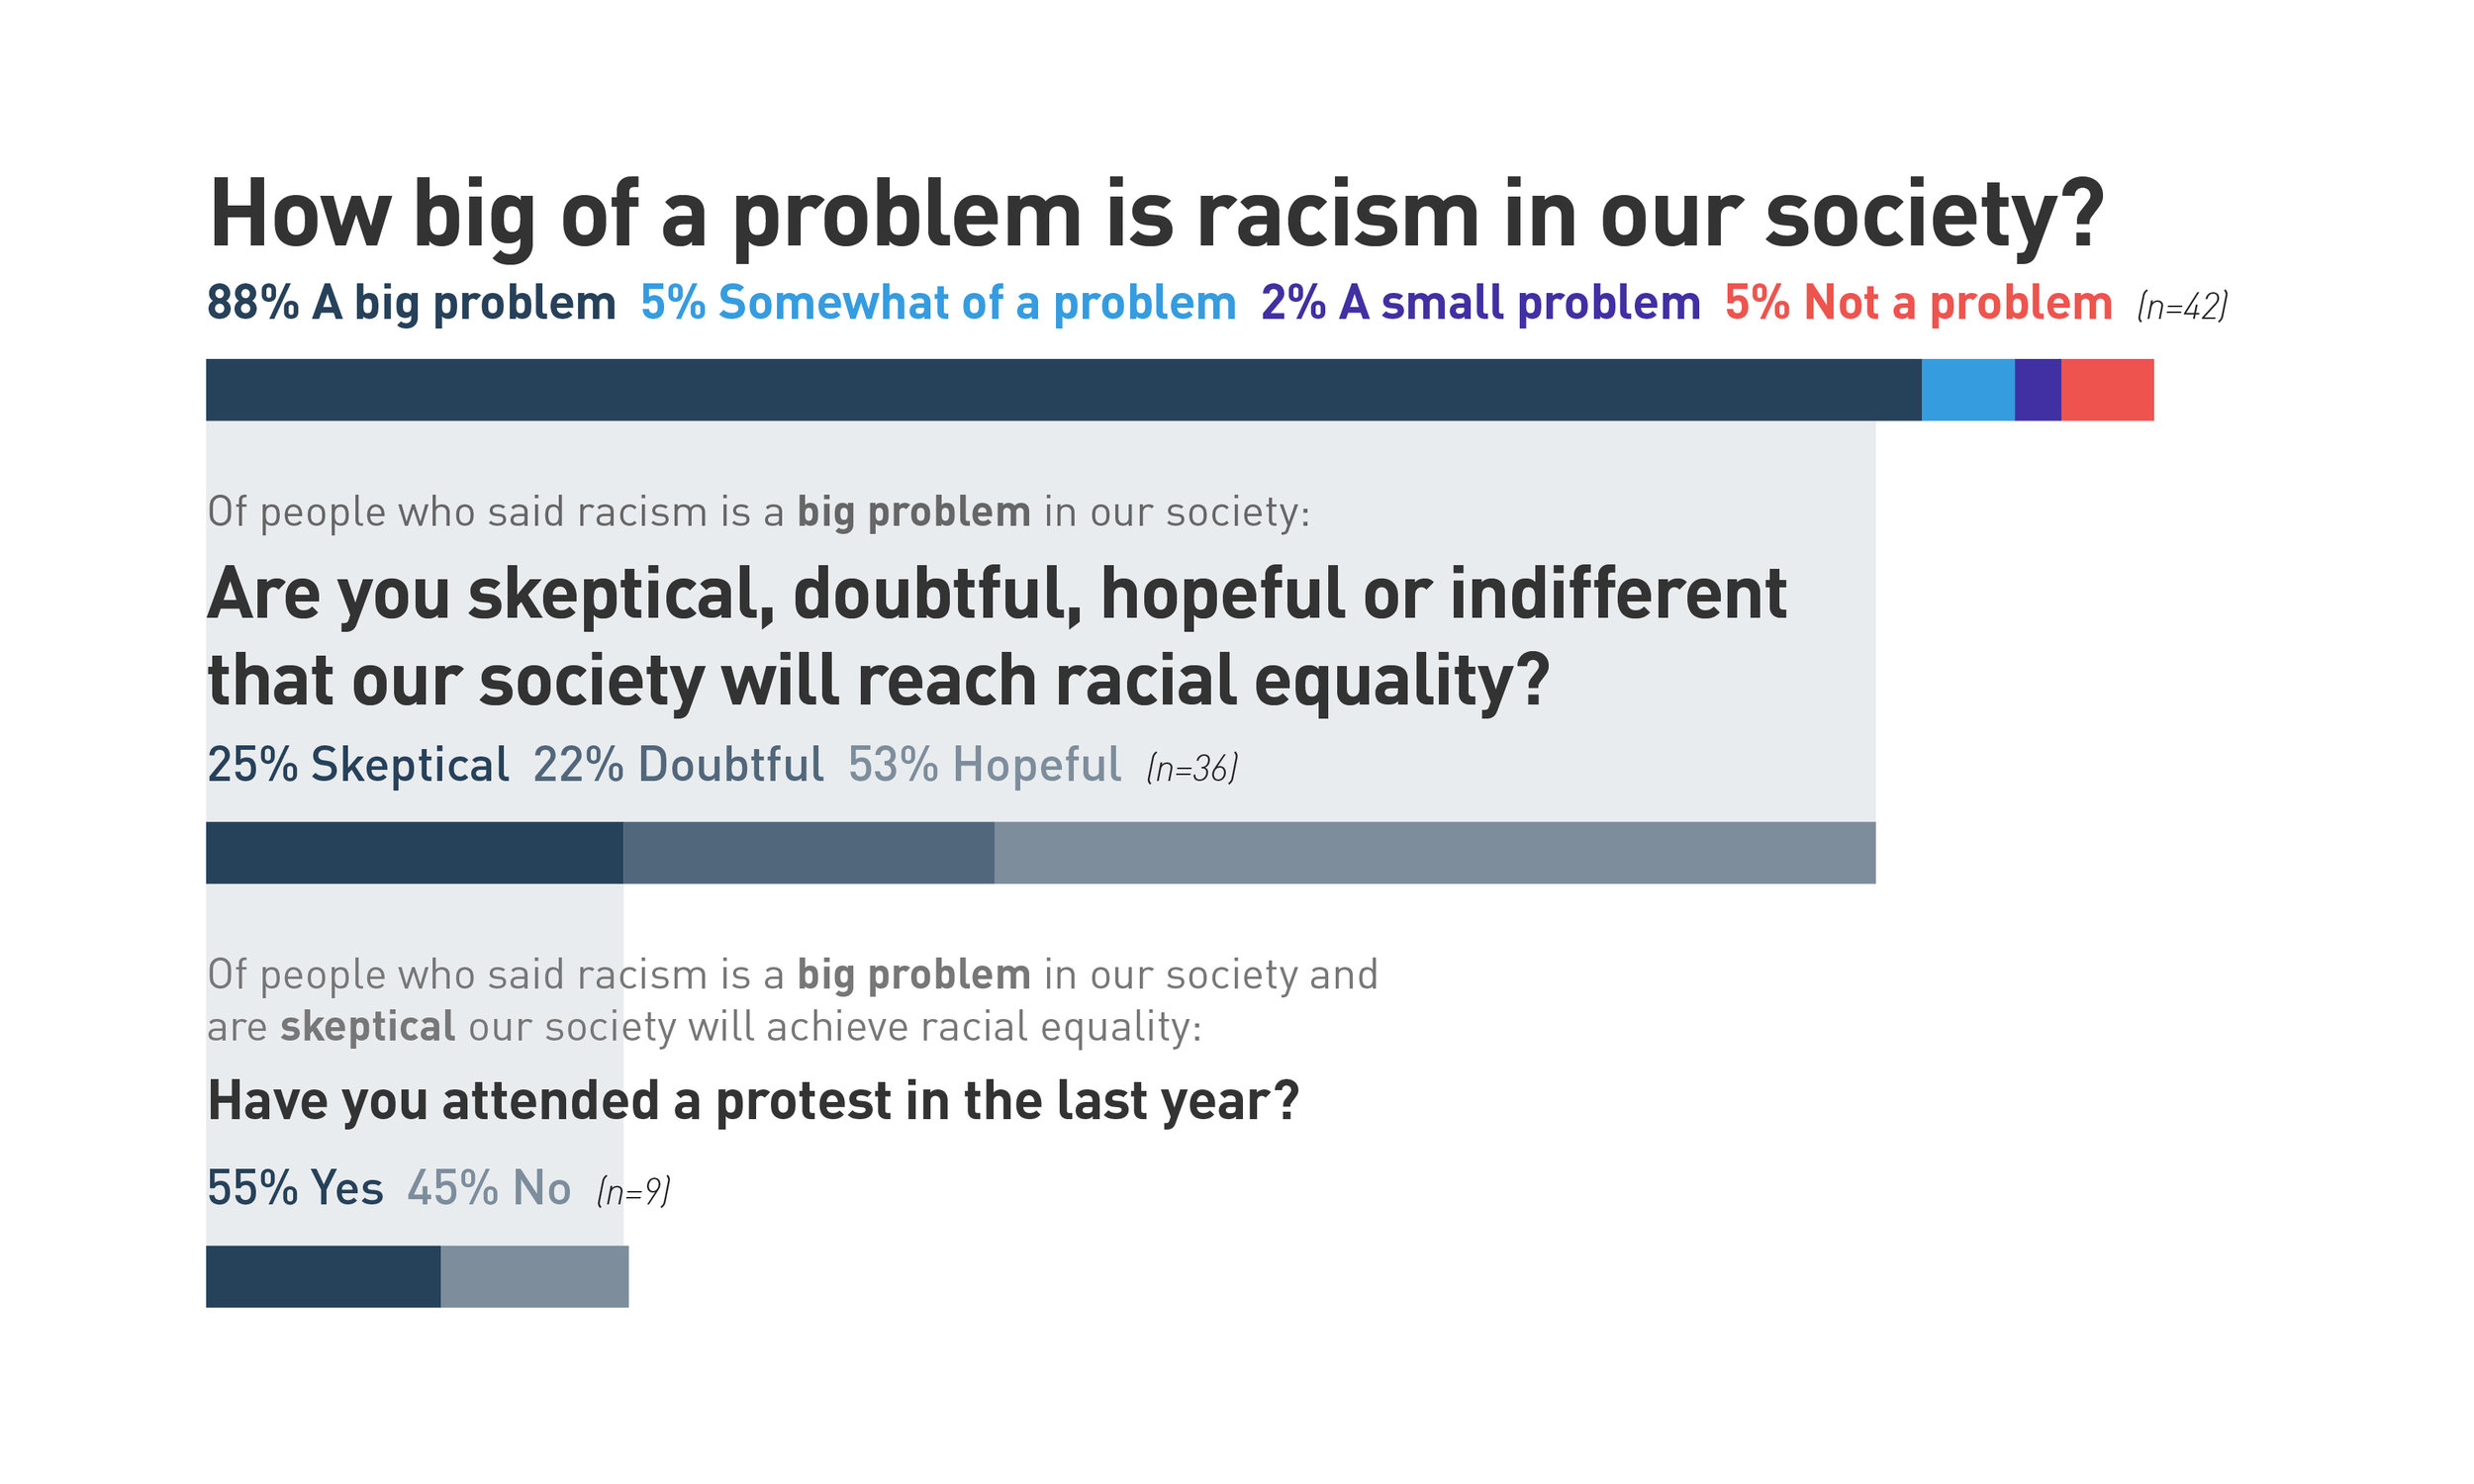 Although 25 percent of respondents who said racism is a big problem in our society are skeptical we will reach racial equality, 55 percent have attended a protest in the last year.